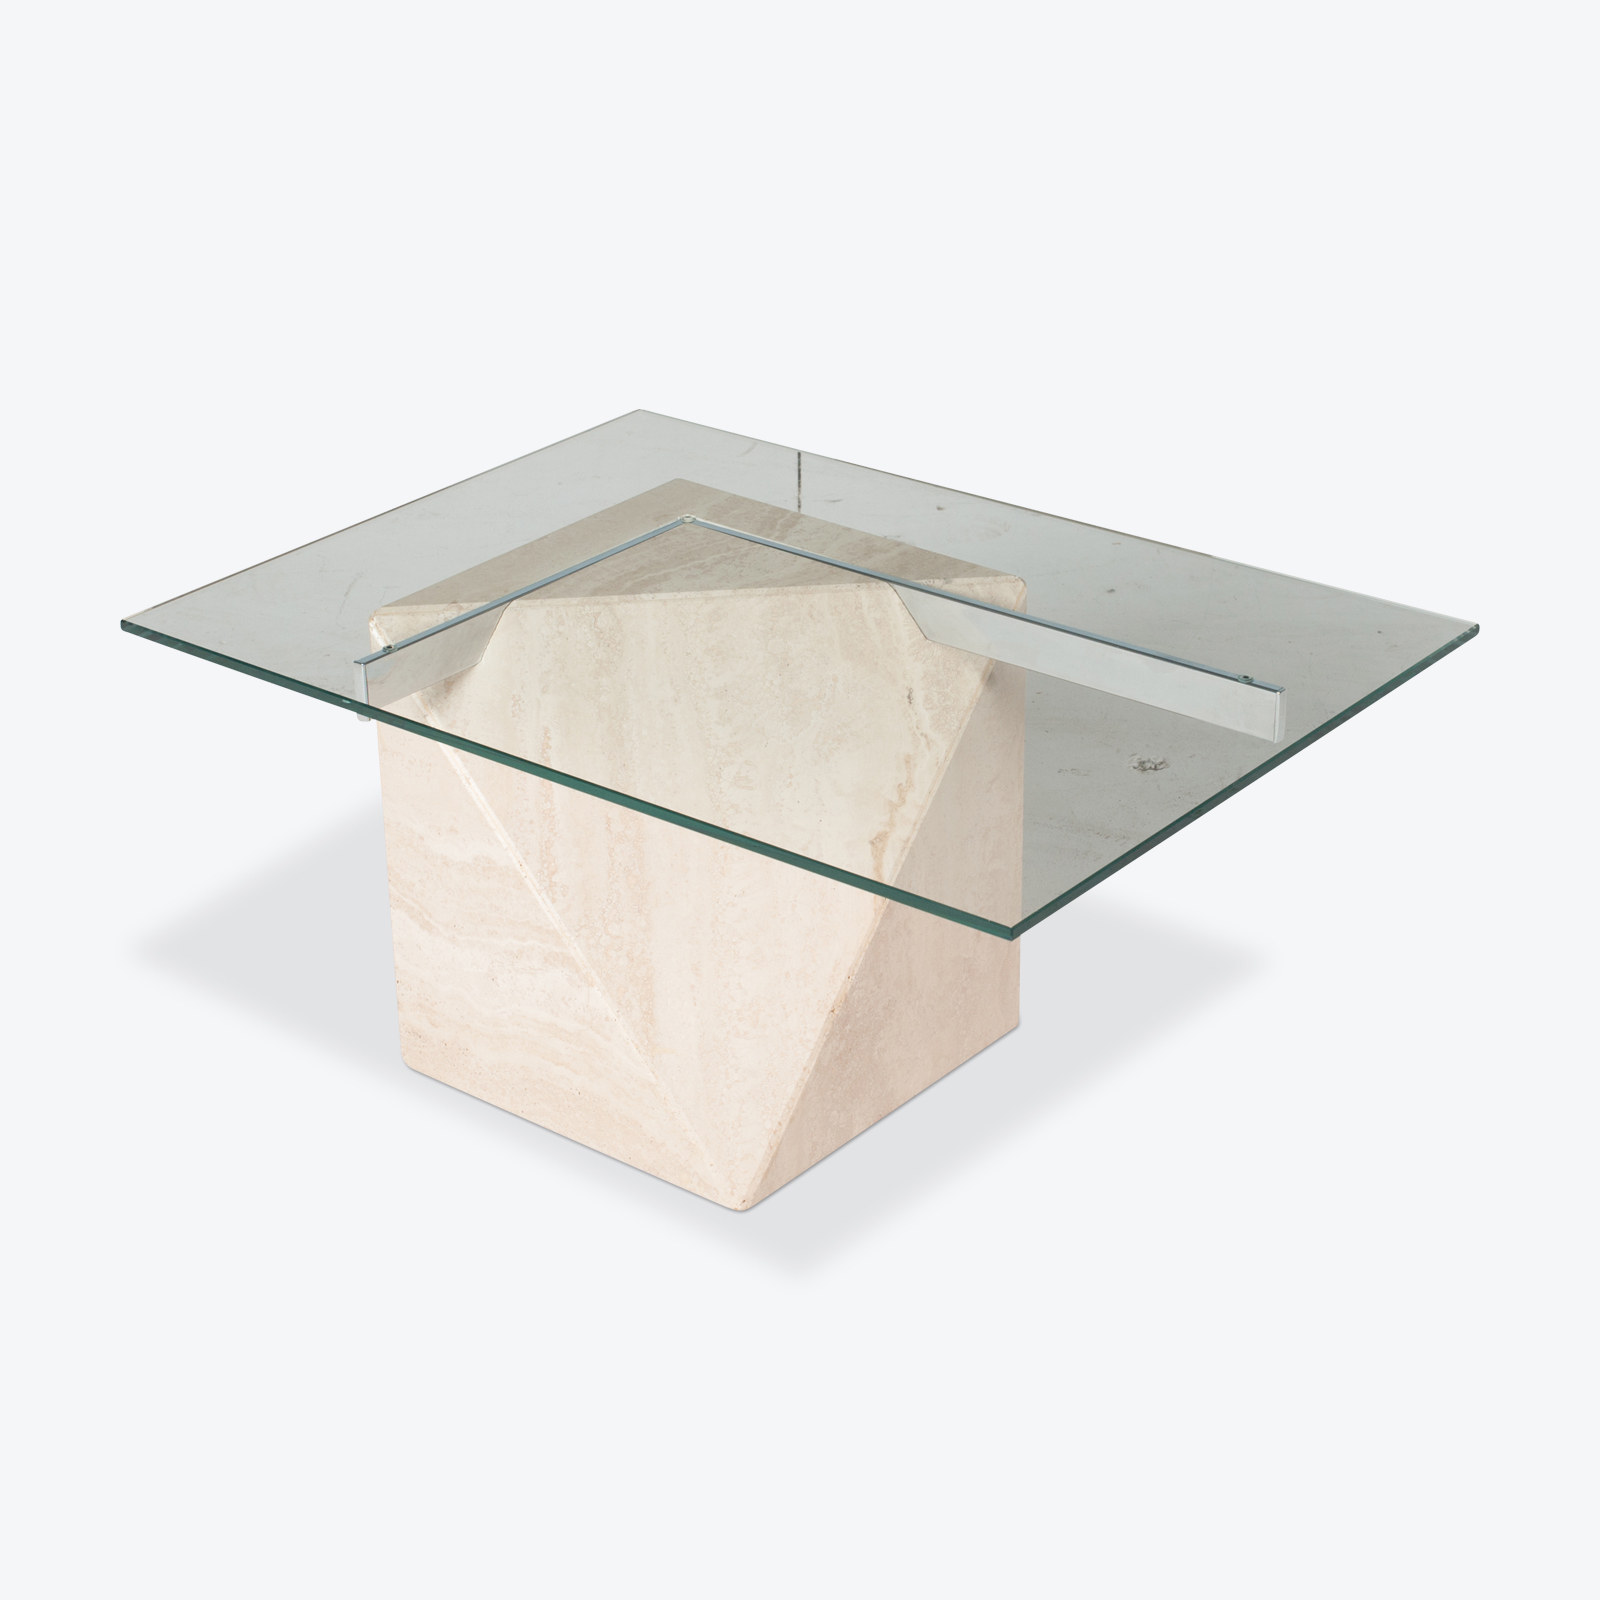 Coffee Table By Artedi In Travertine, Cantilevered Glass And Chrome, 1970s, Italy